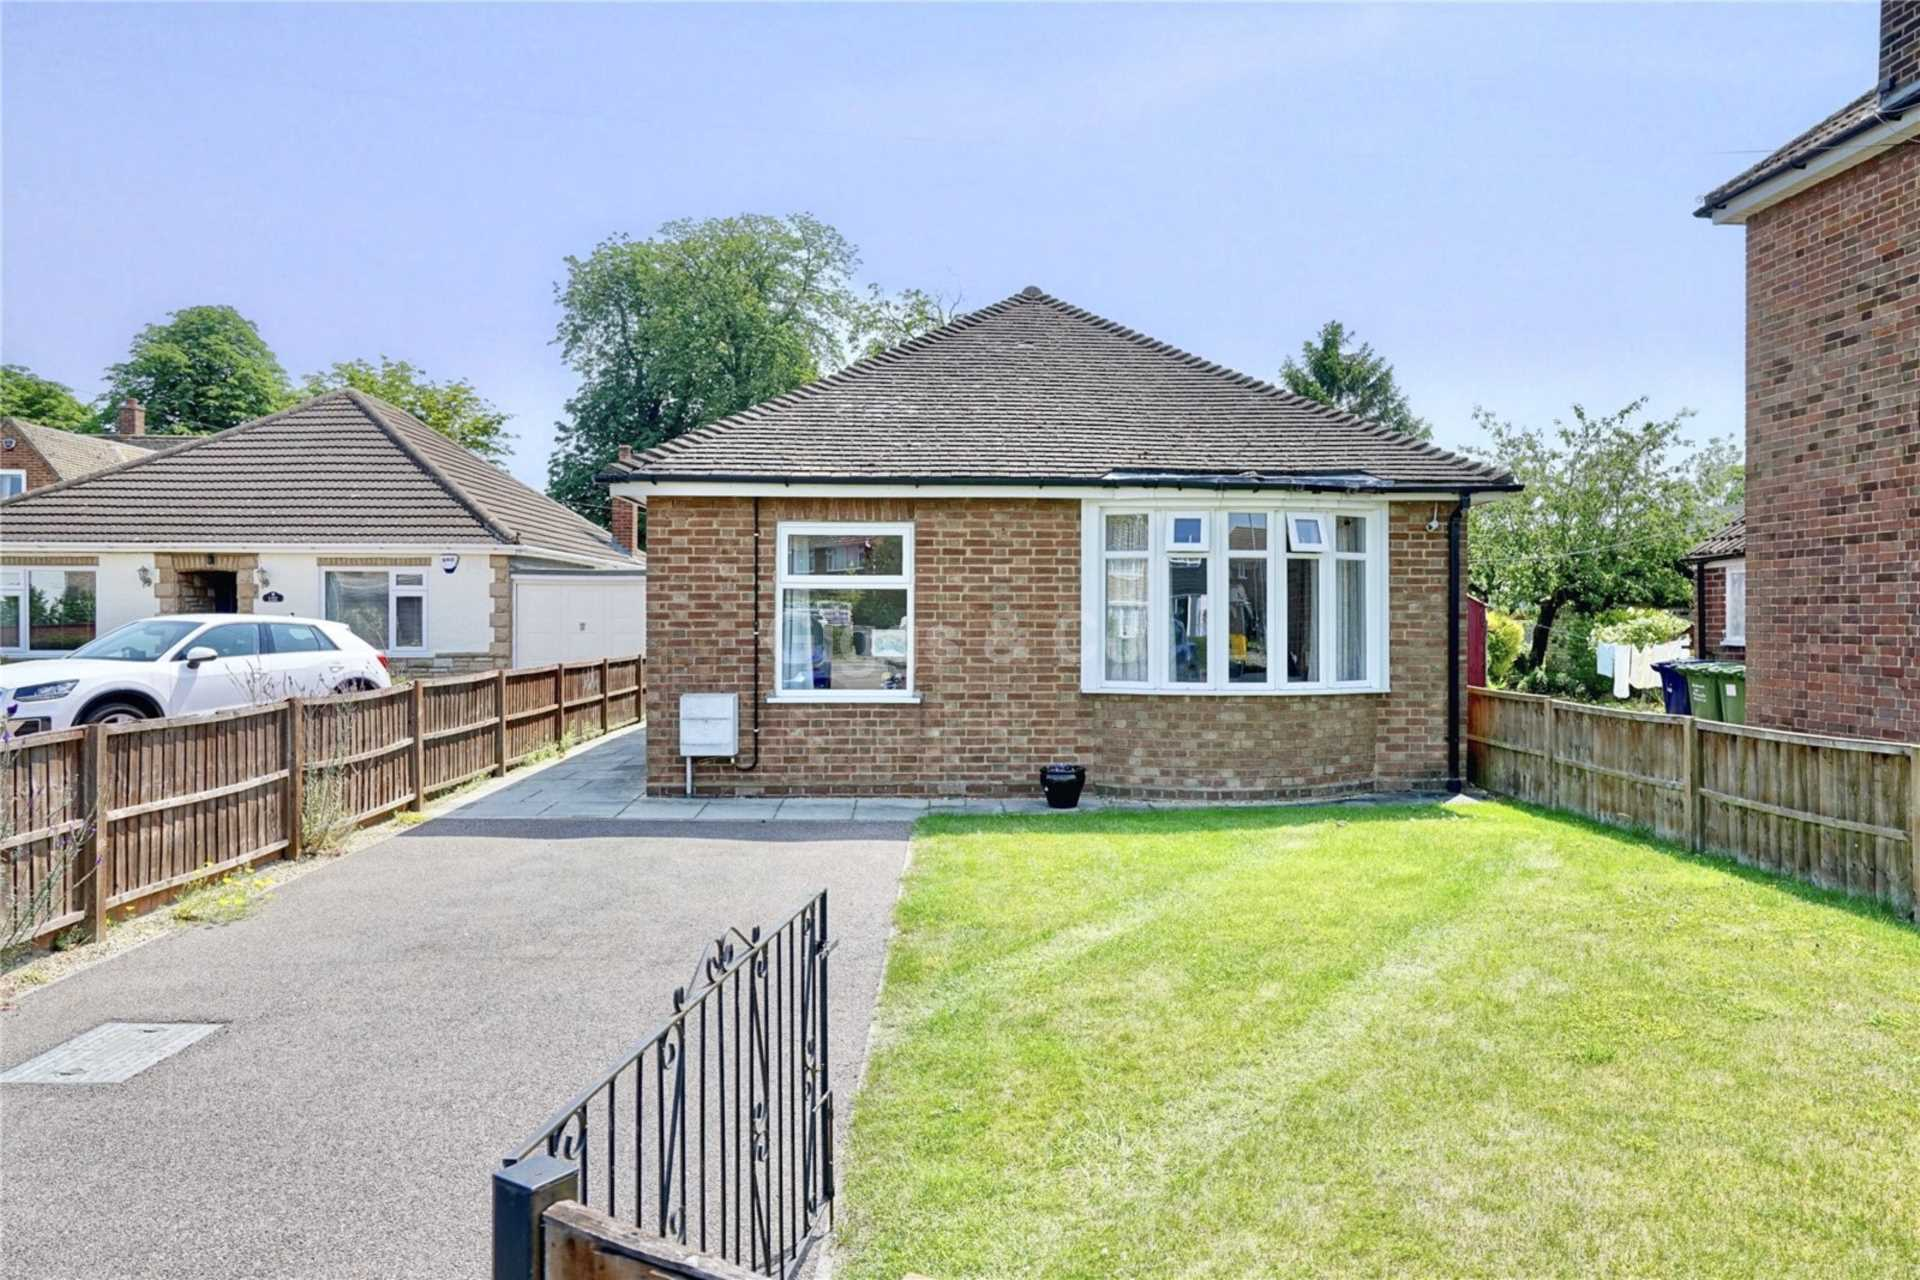 3 bed bungalow to rent in St Neots Road, Eaton Ford, St Neots, PE19